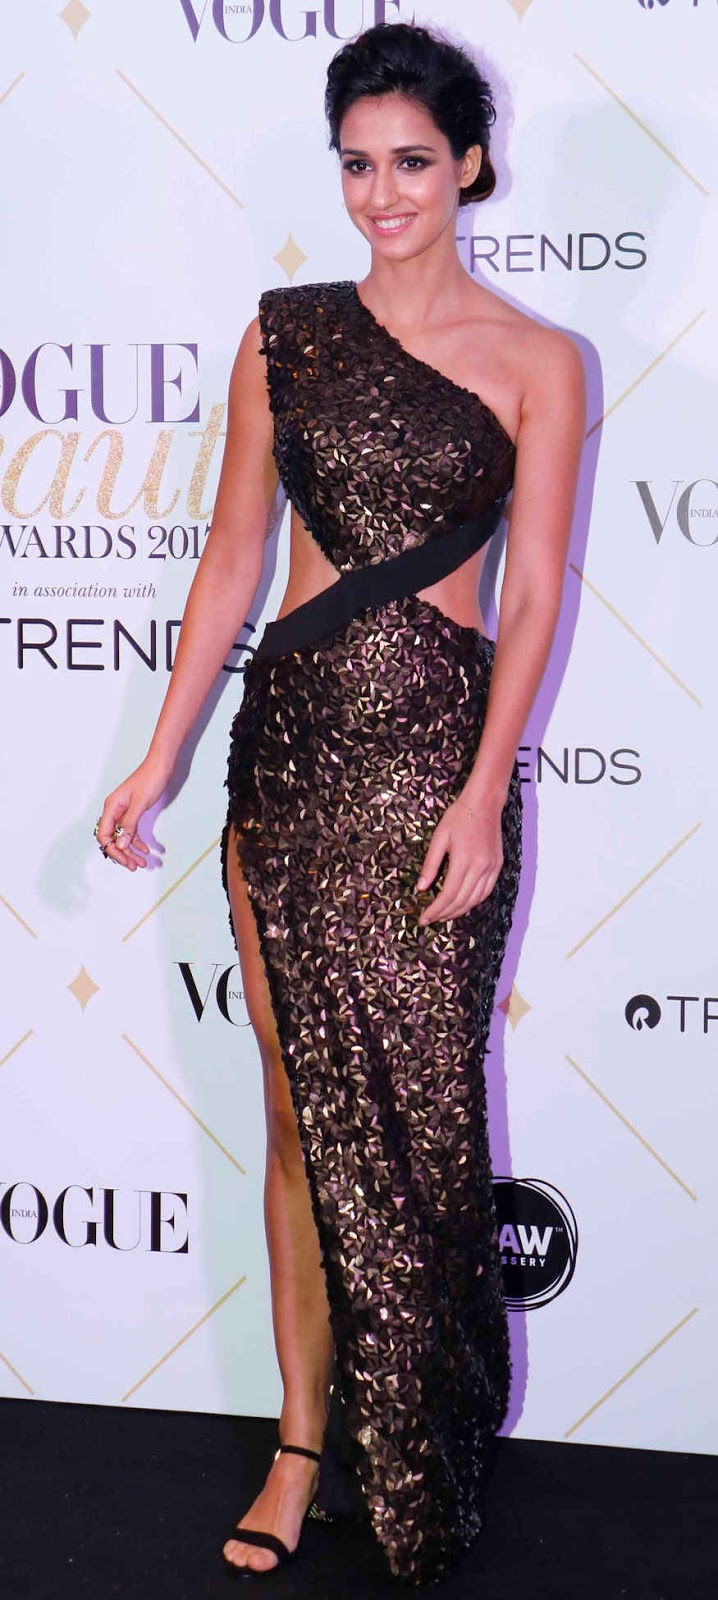 Disha Patani Sexy Thigh Show Pics for Vogue Beauty Awards 2017 Event